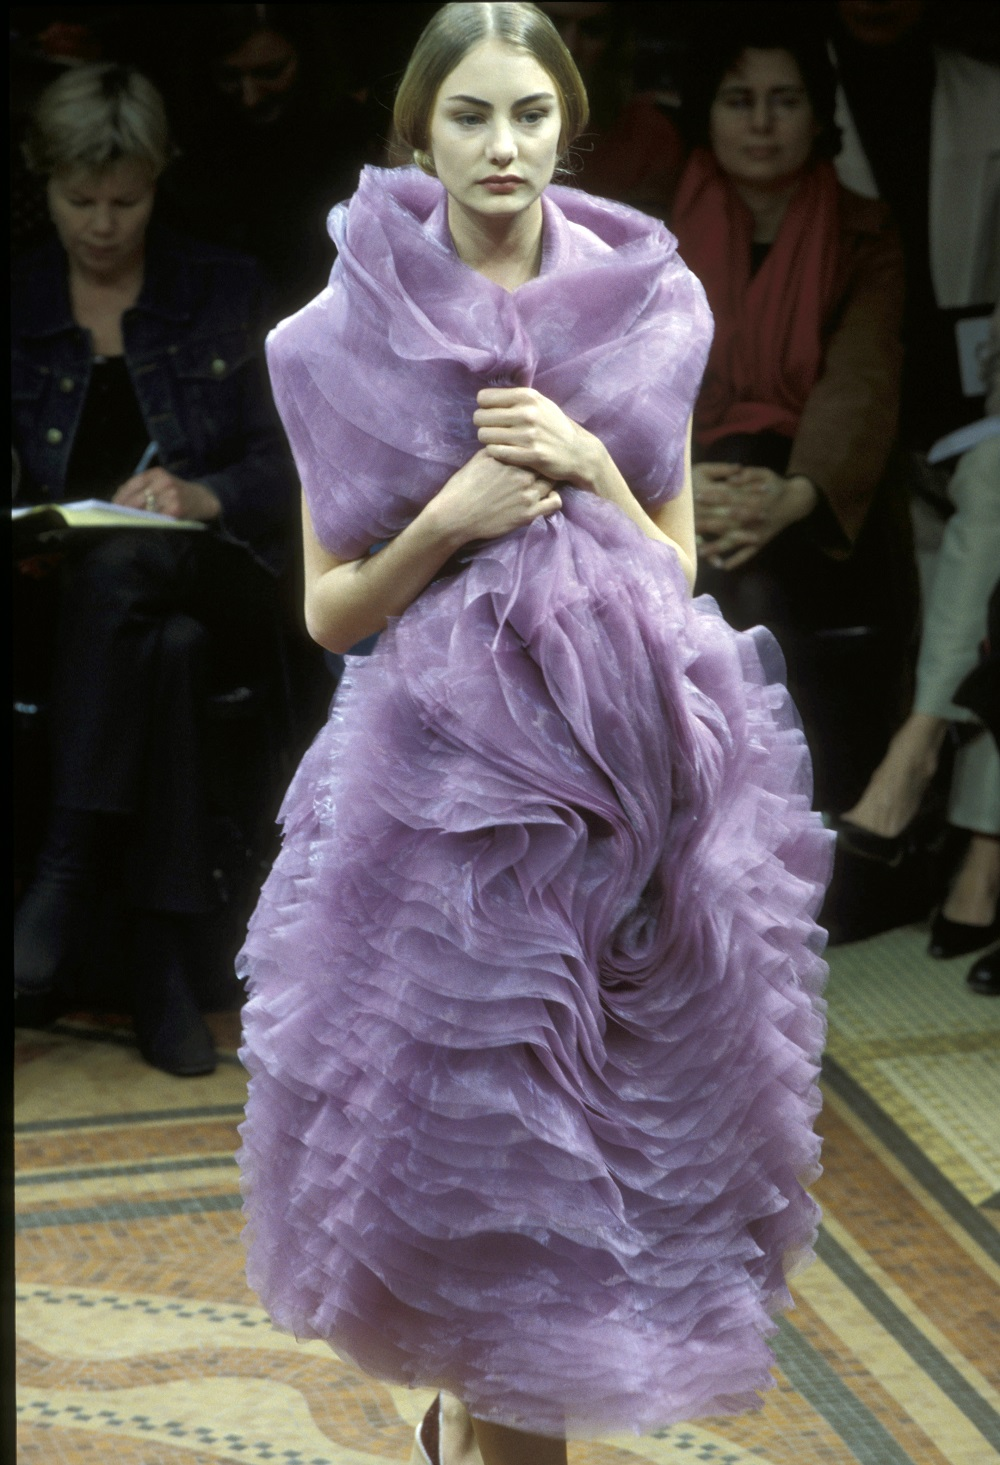 Junya Watanabe, Techno-couture collectie, herfst/winter 2000-2001 - foto Etienne Tordoir.